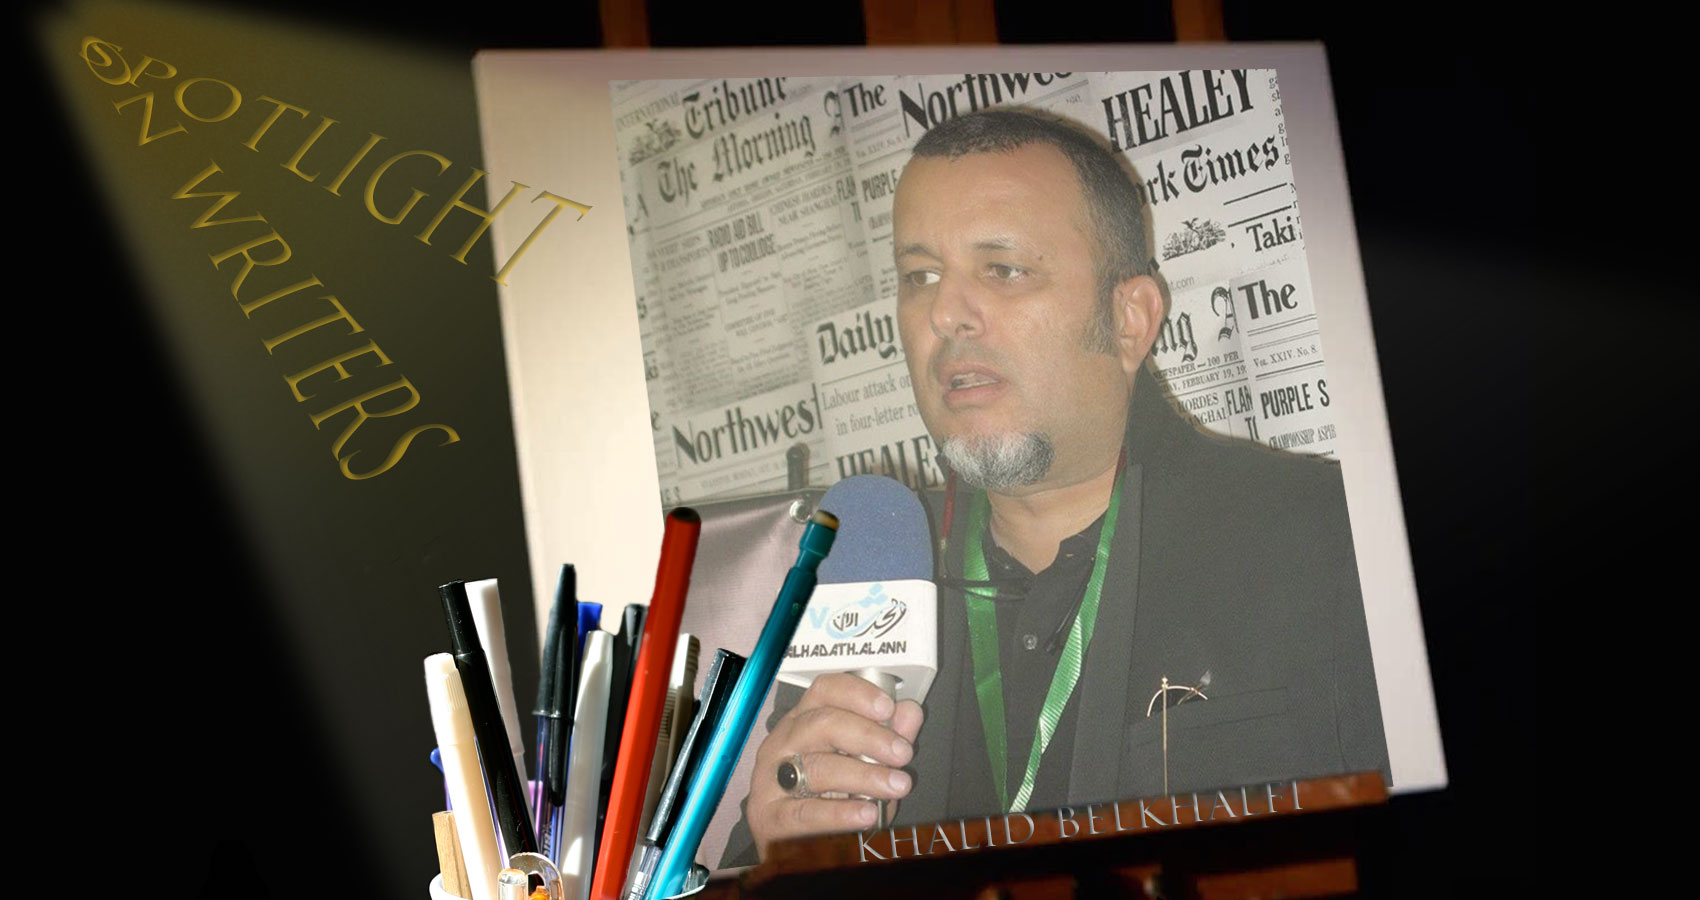 Spotlight On Writers - Khalid Belkhalfi at Spillwords.com